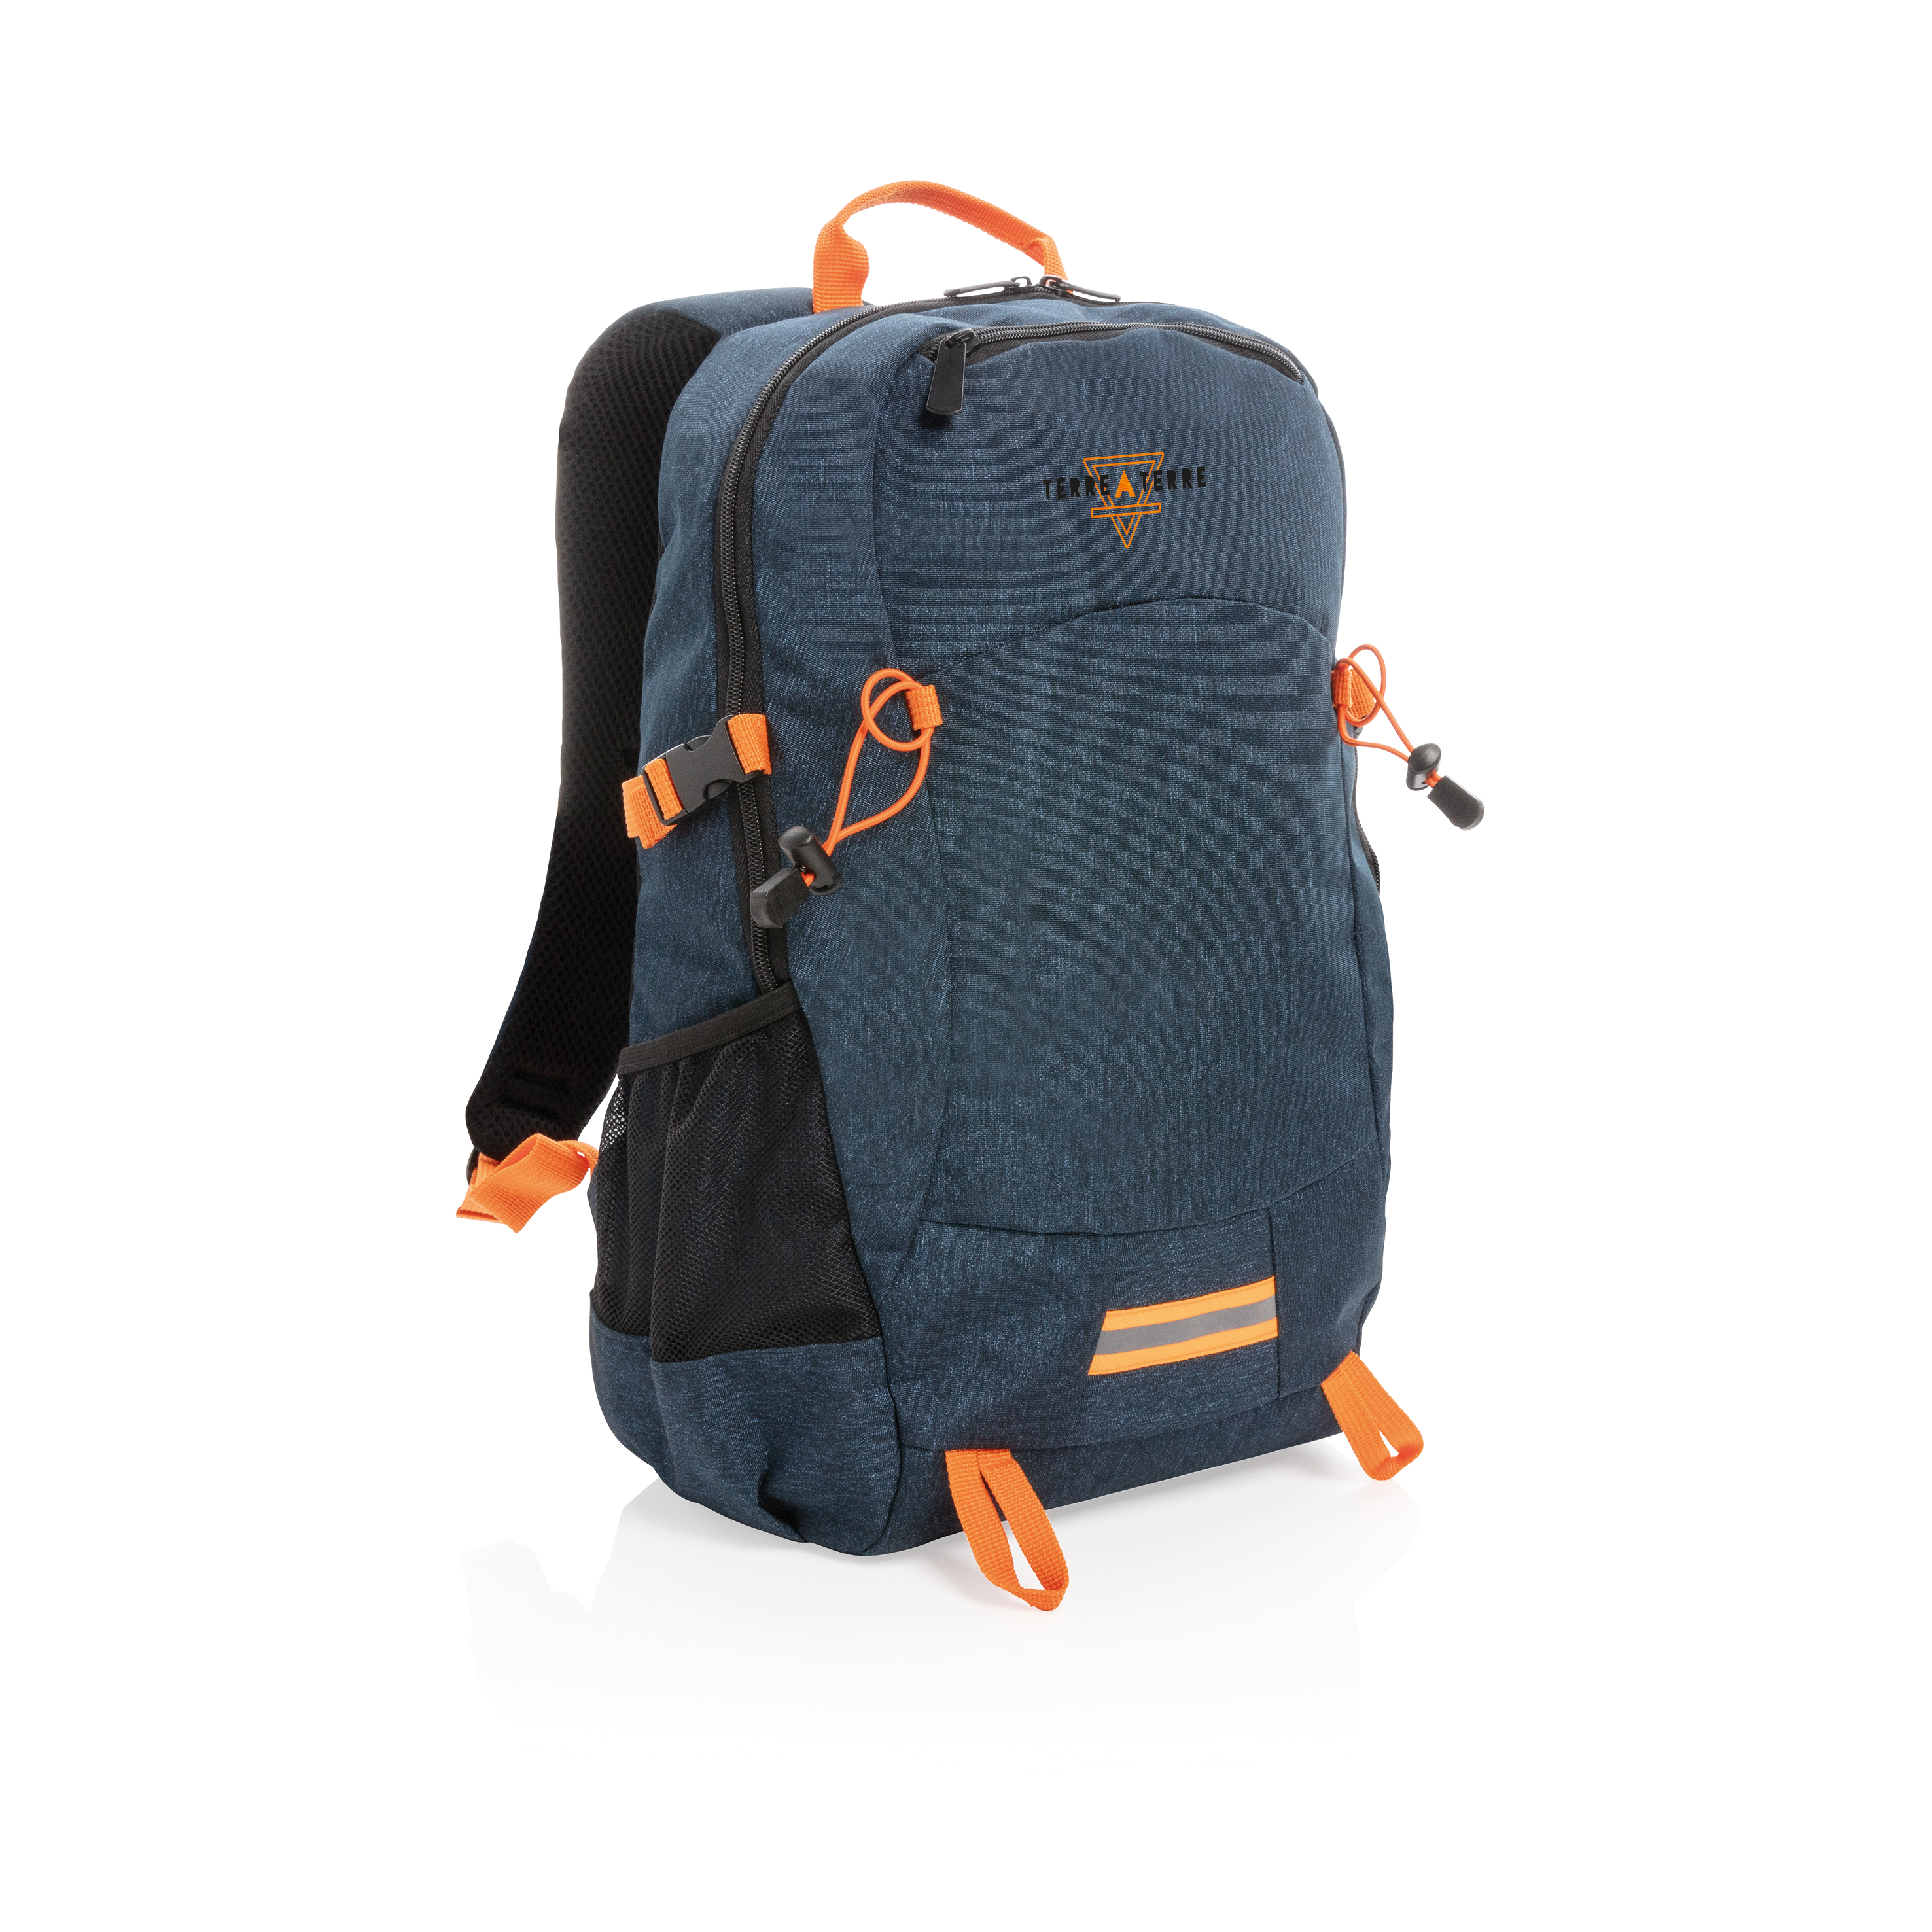 Personalised blue and orange sport backpack available at Helloprint at a low price.